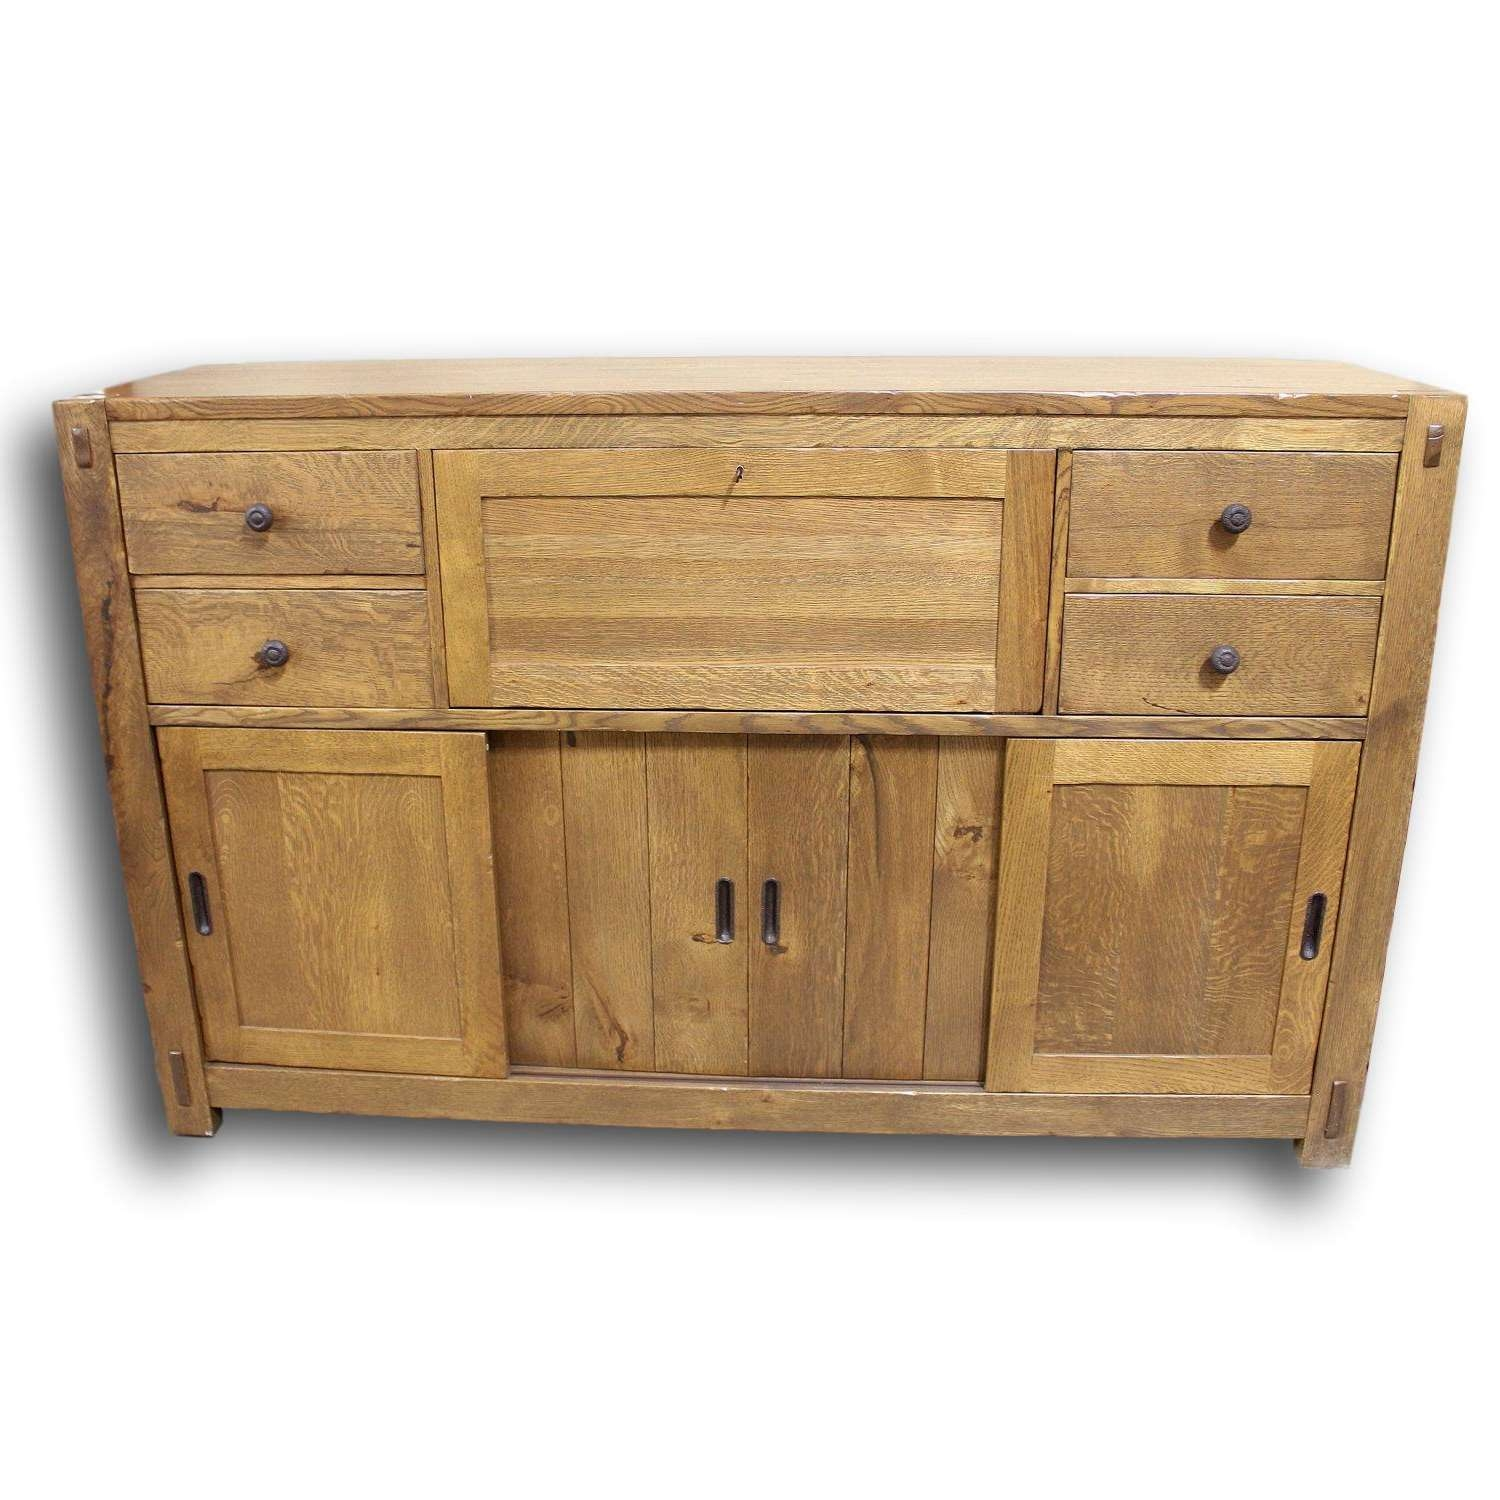 Stickley Oak Sideboard | Upscale Consignment Throughout Stickley Sideboards (View 15 of 20)